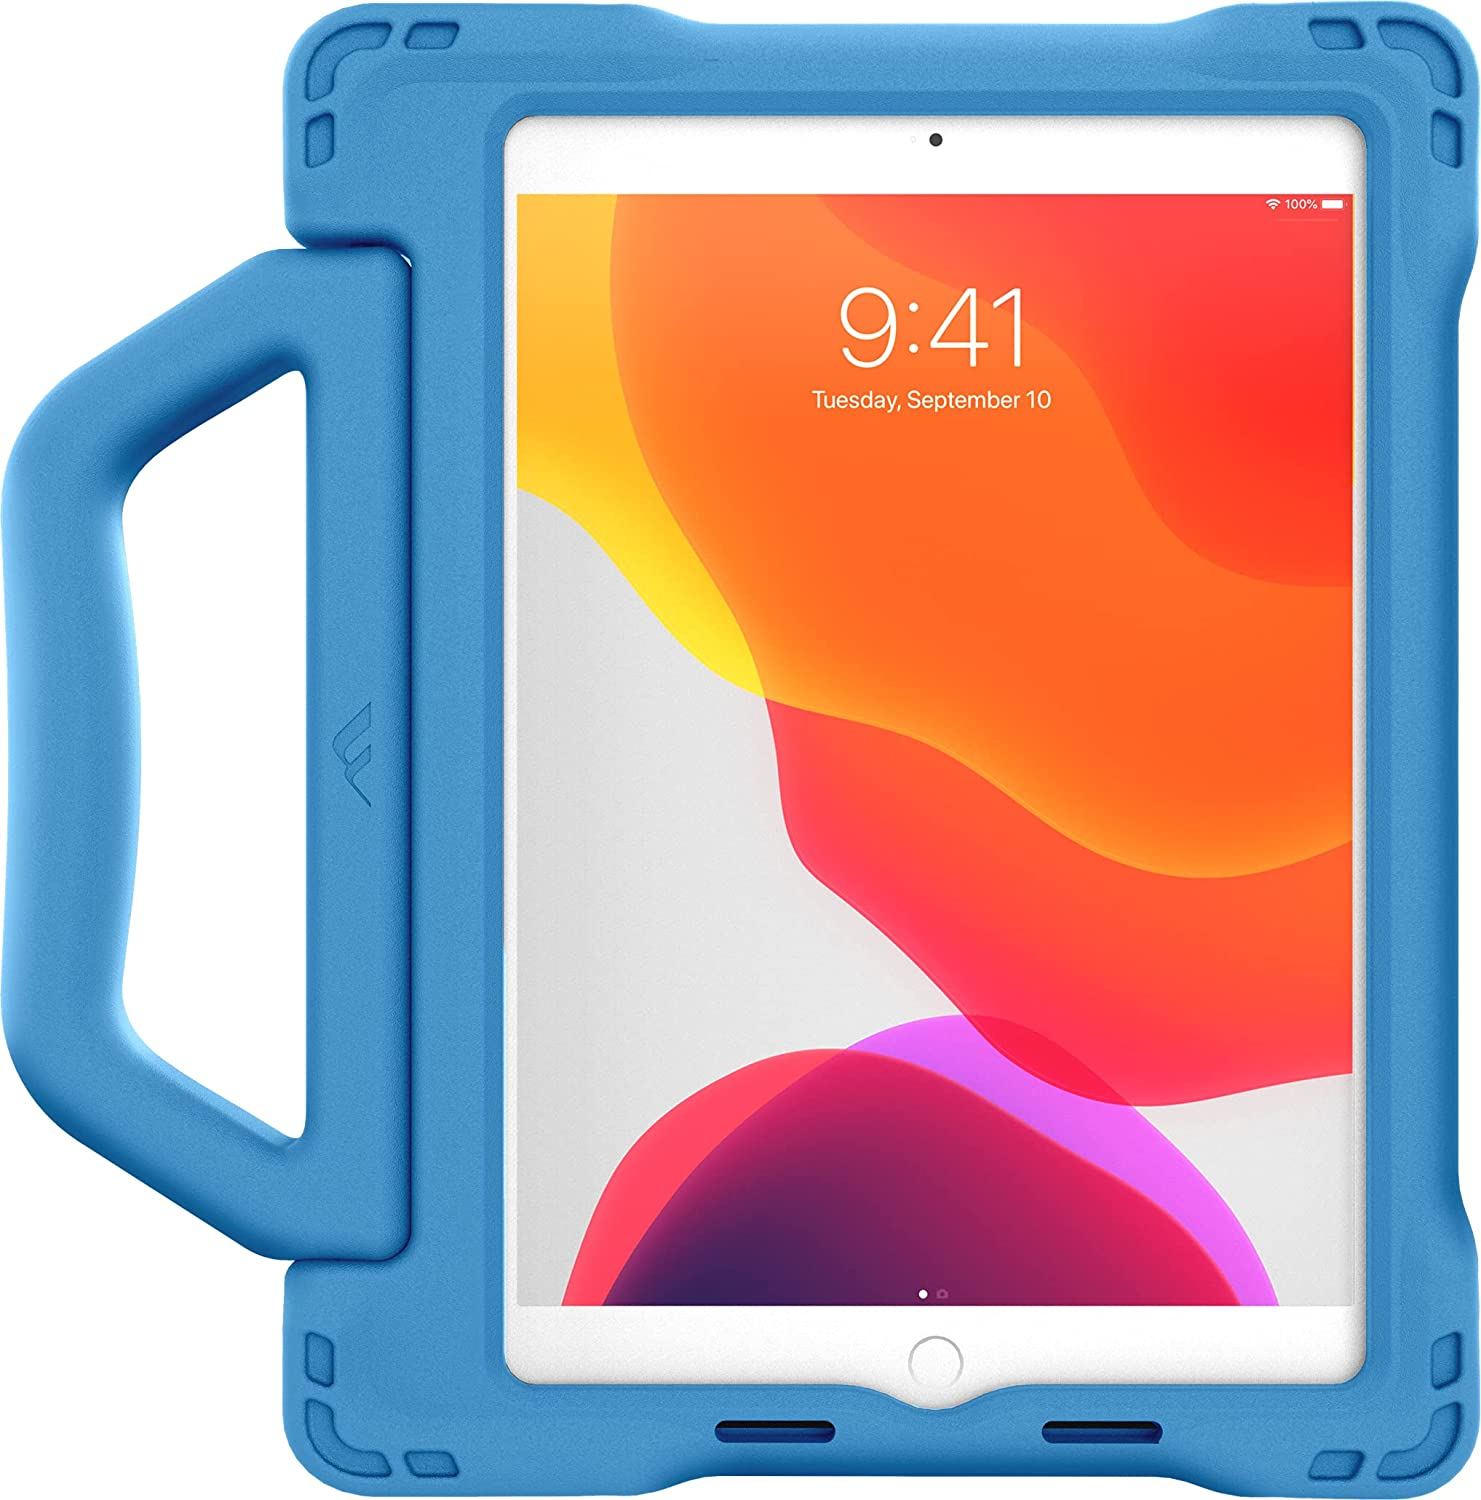 Brenthaven Edge Bounce Case online shop Designed for New iPad The Superior Apple 10.2